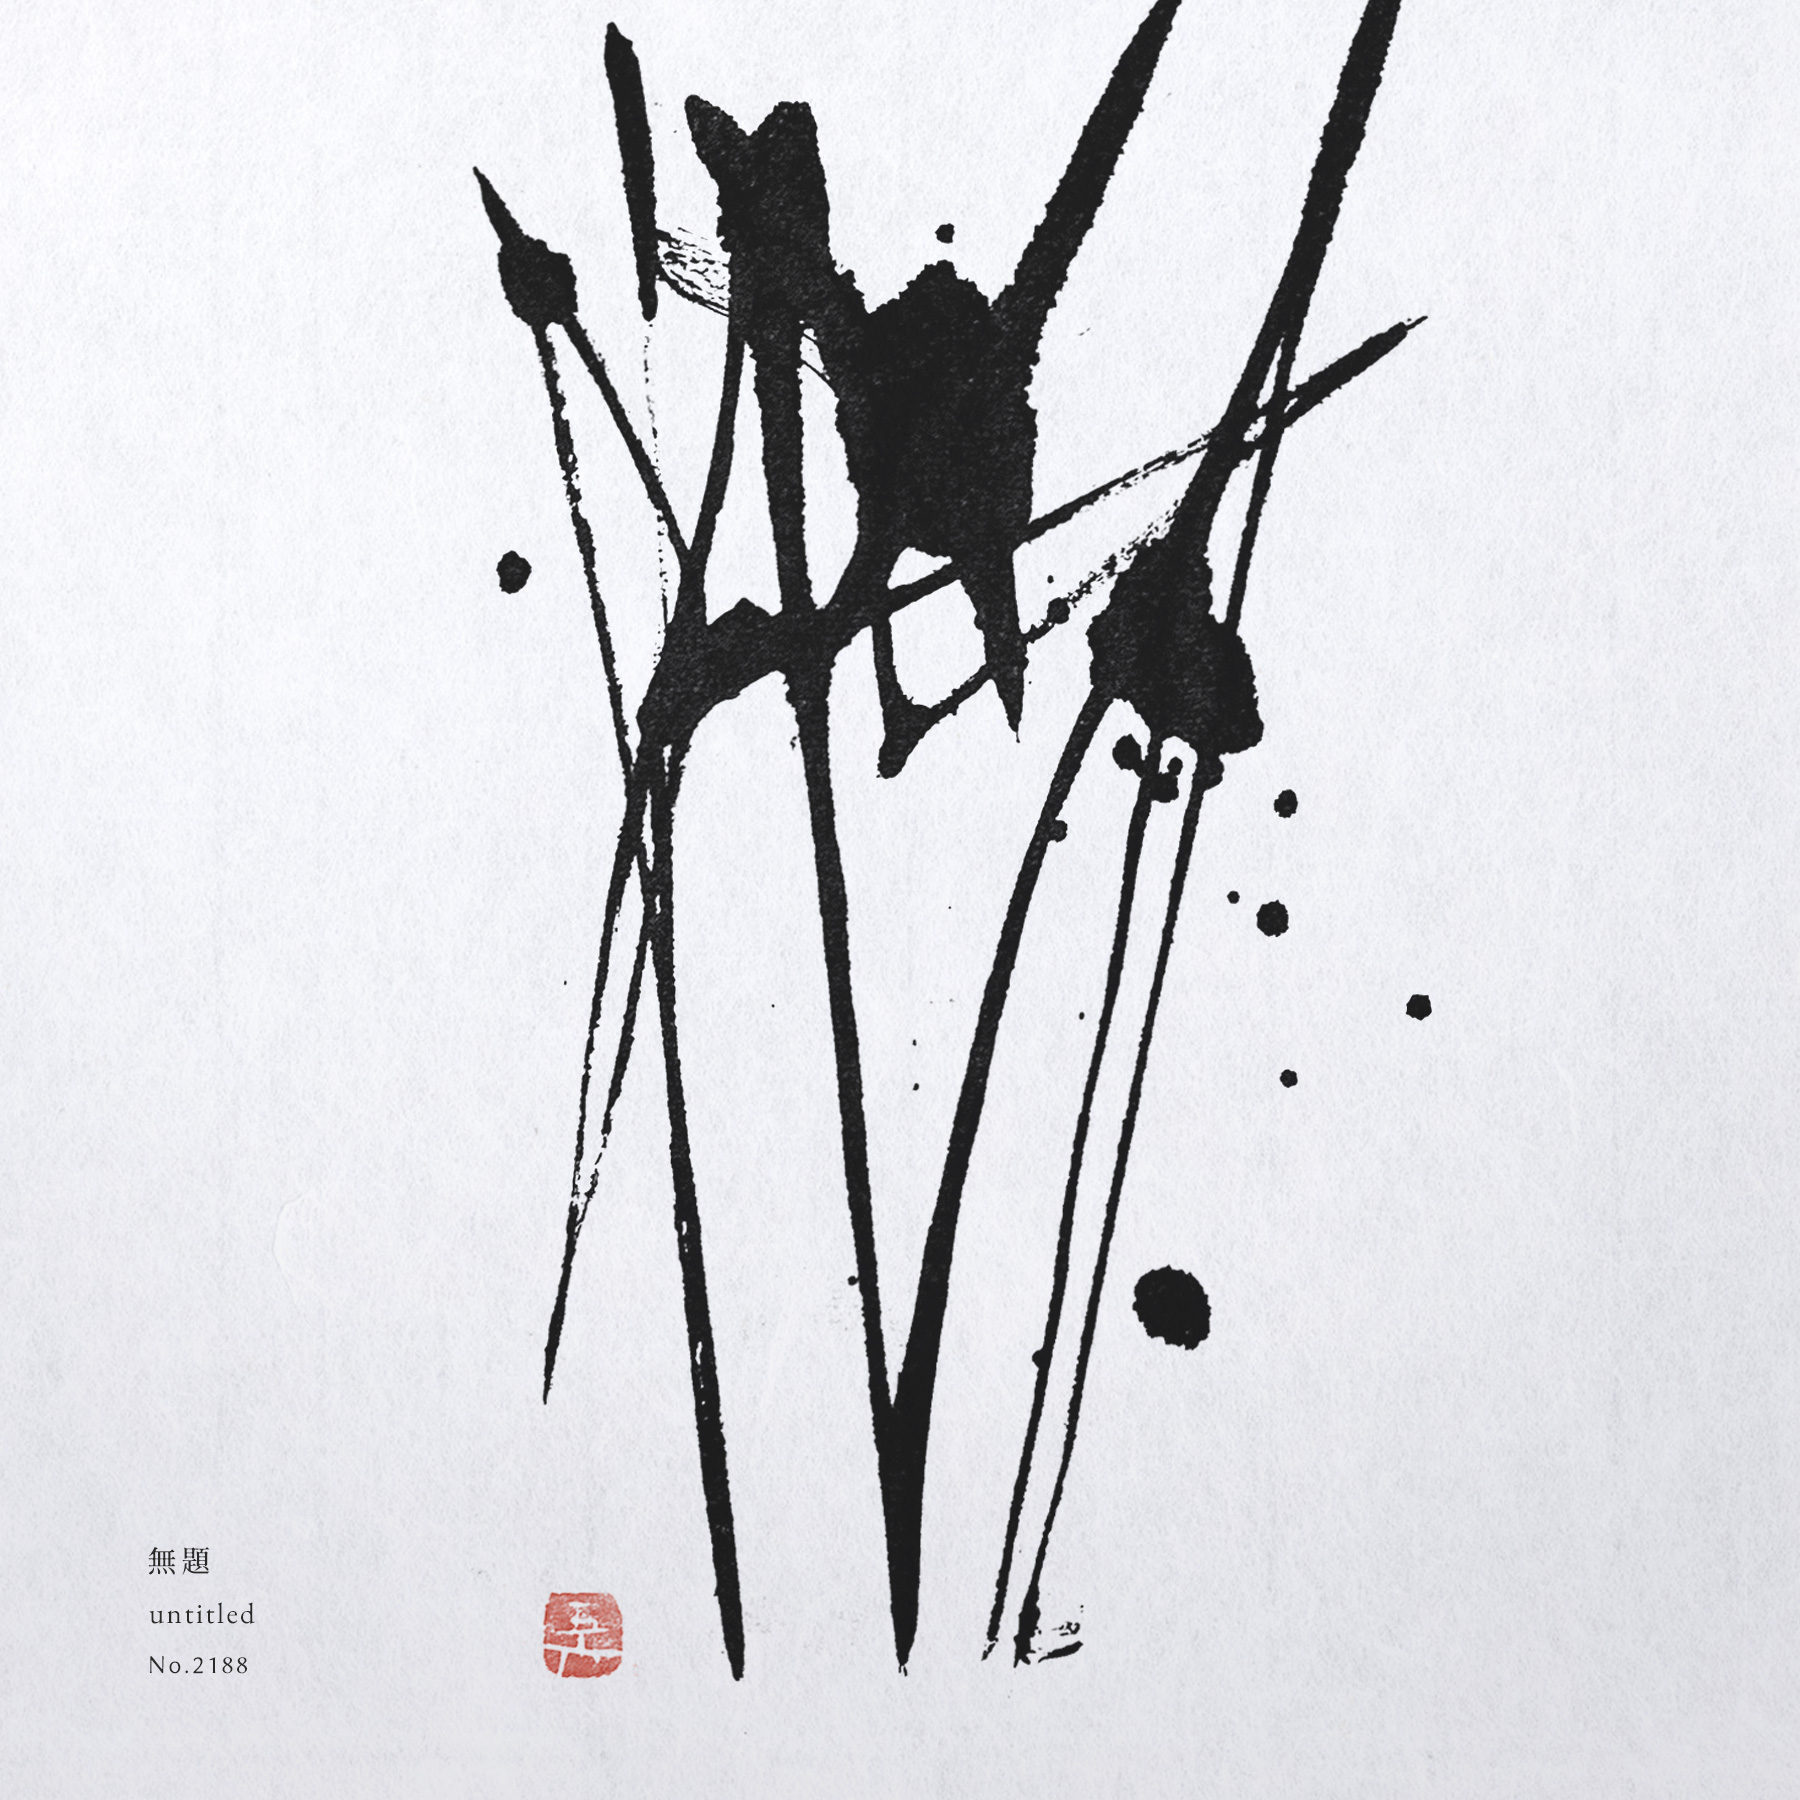 無題 | untitled 書道作品 japaneseart japanese calligraphy 書家 田川悟郎 Goroh Tagawa